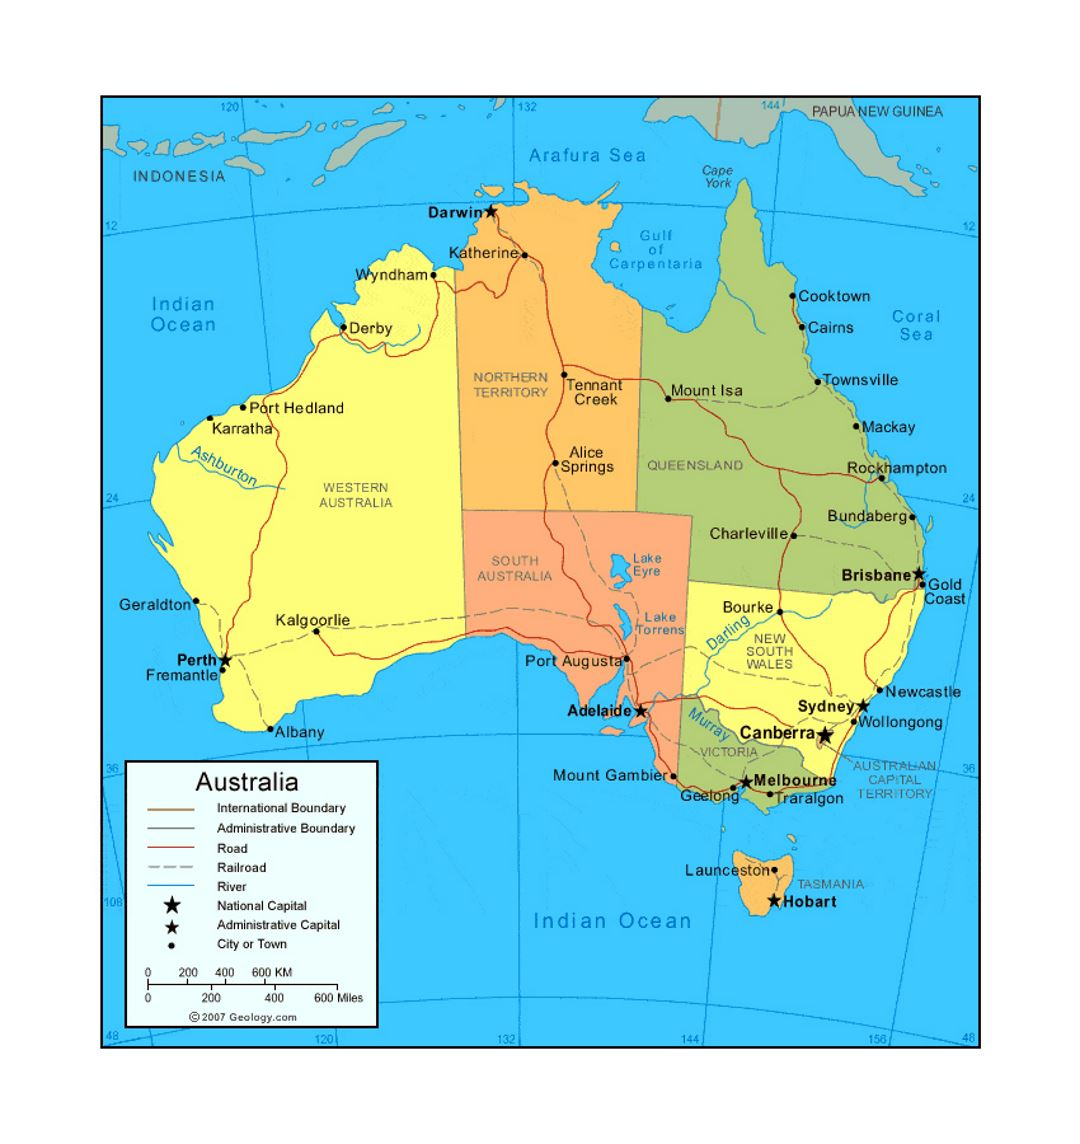 Map Of Australia Showing Capital Cities.Political And Administrative Map Of Australia With Roads Railroads